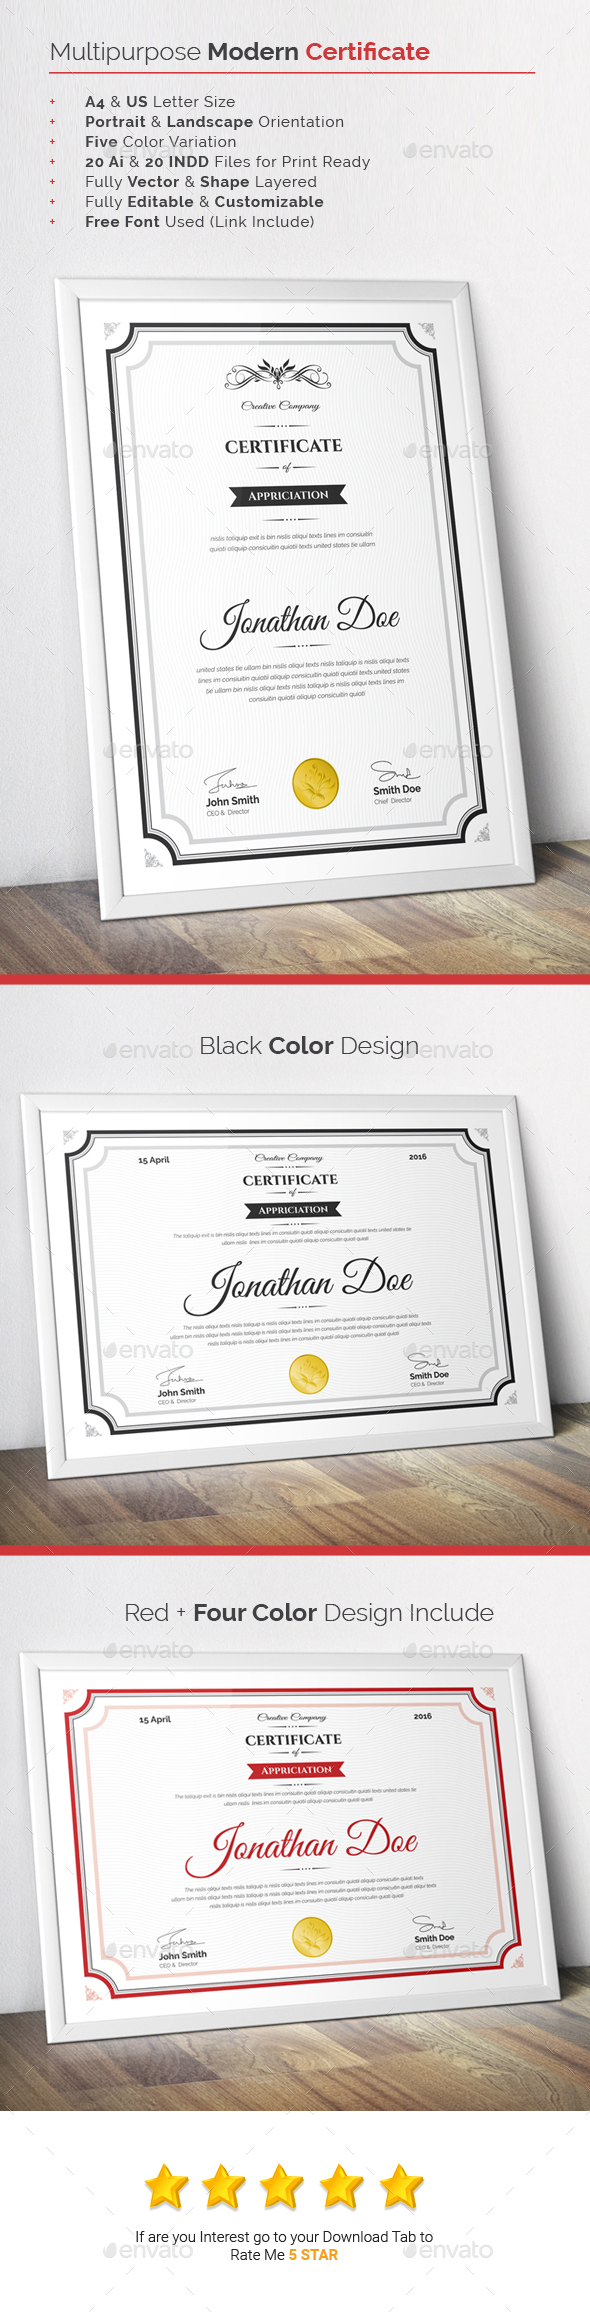 Multipurpose Modern Certificate Template Indd Vector Ai Download